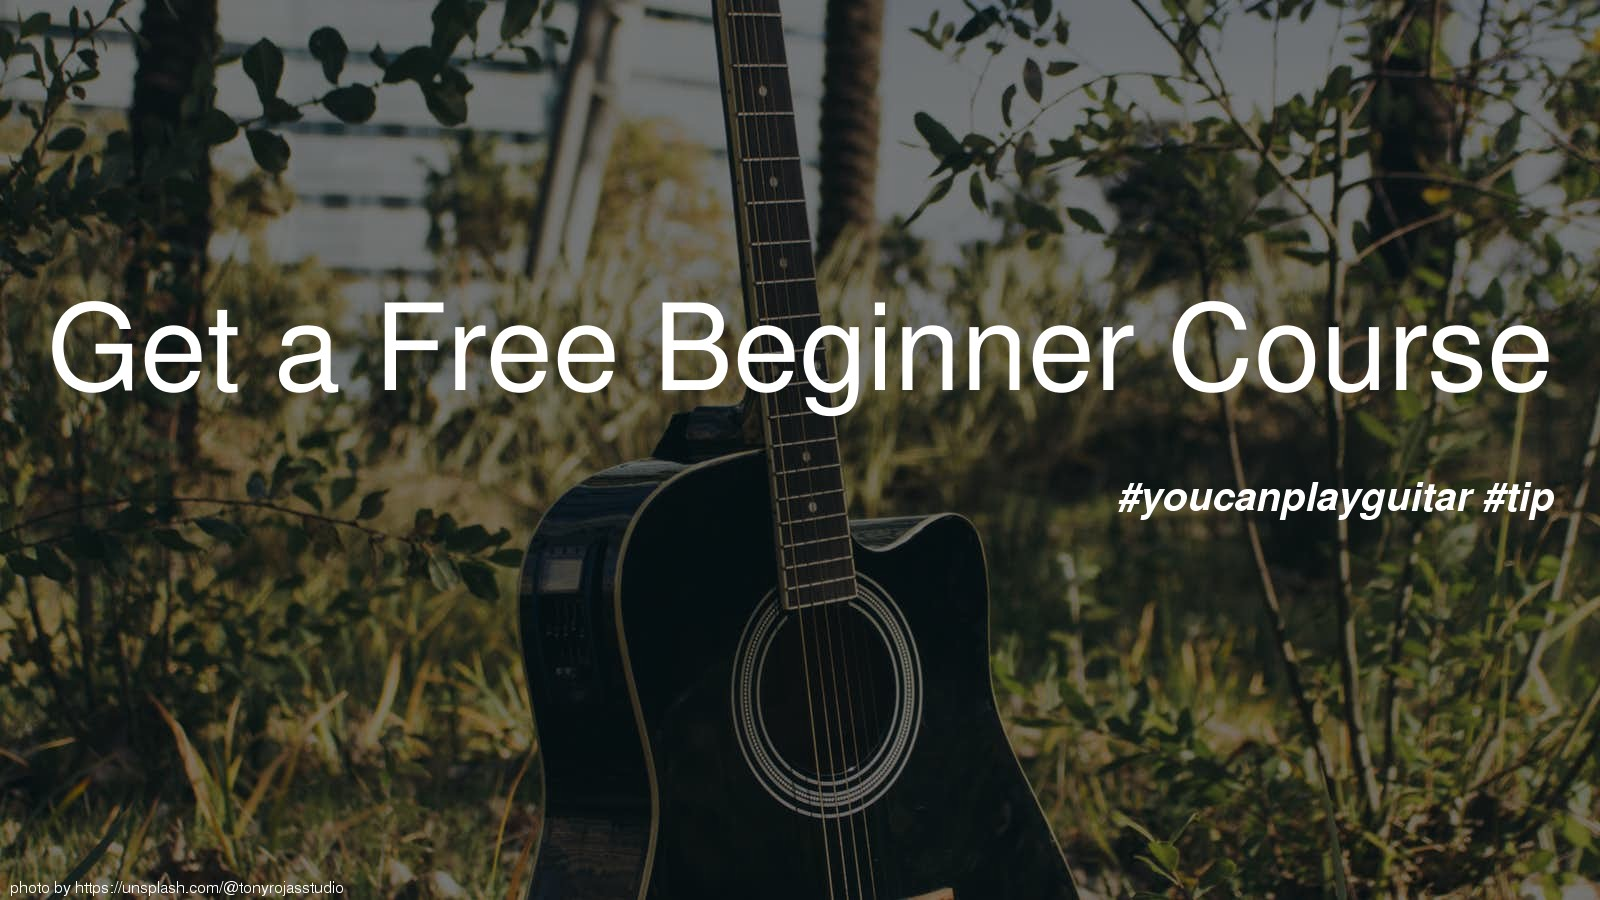 Get a Free Beginner Course